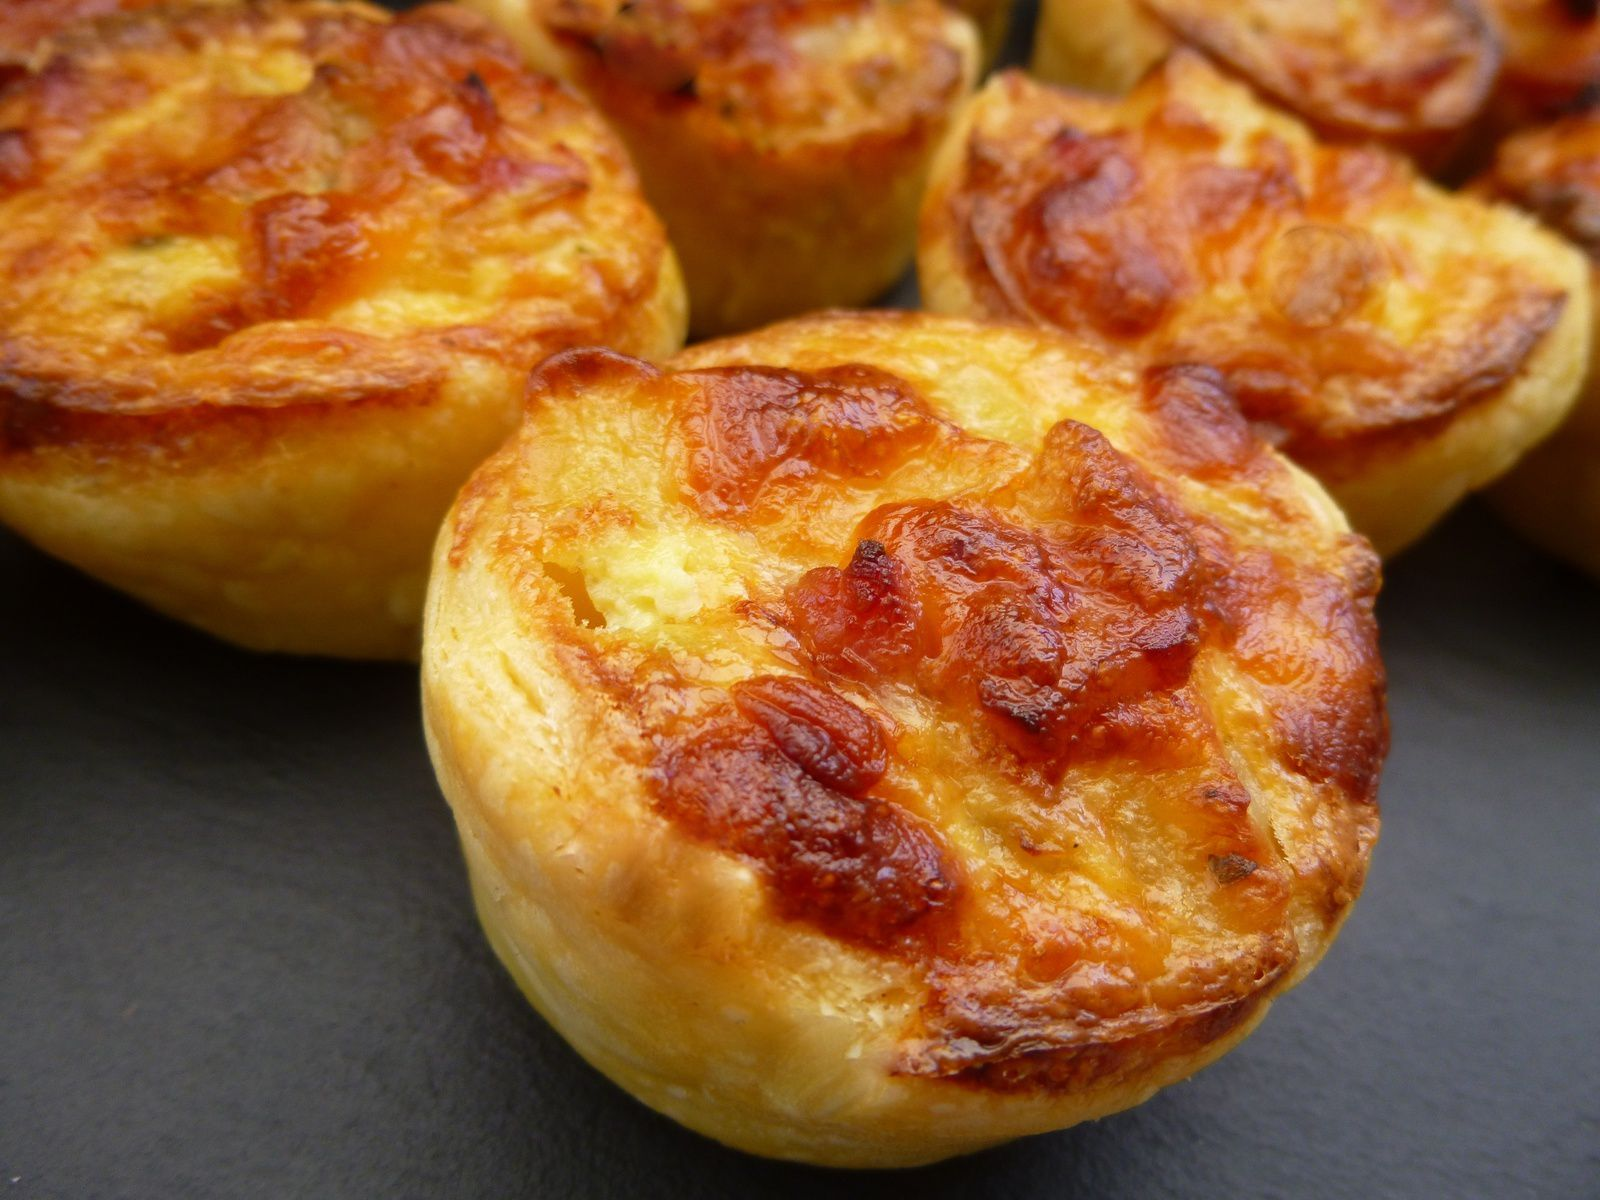 petites quiches aux pommes de terre courgettes lardons passionn ment gourmande. Black Bedroom Furniture Sets. Home Design Ideas